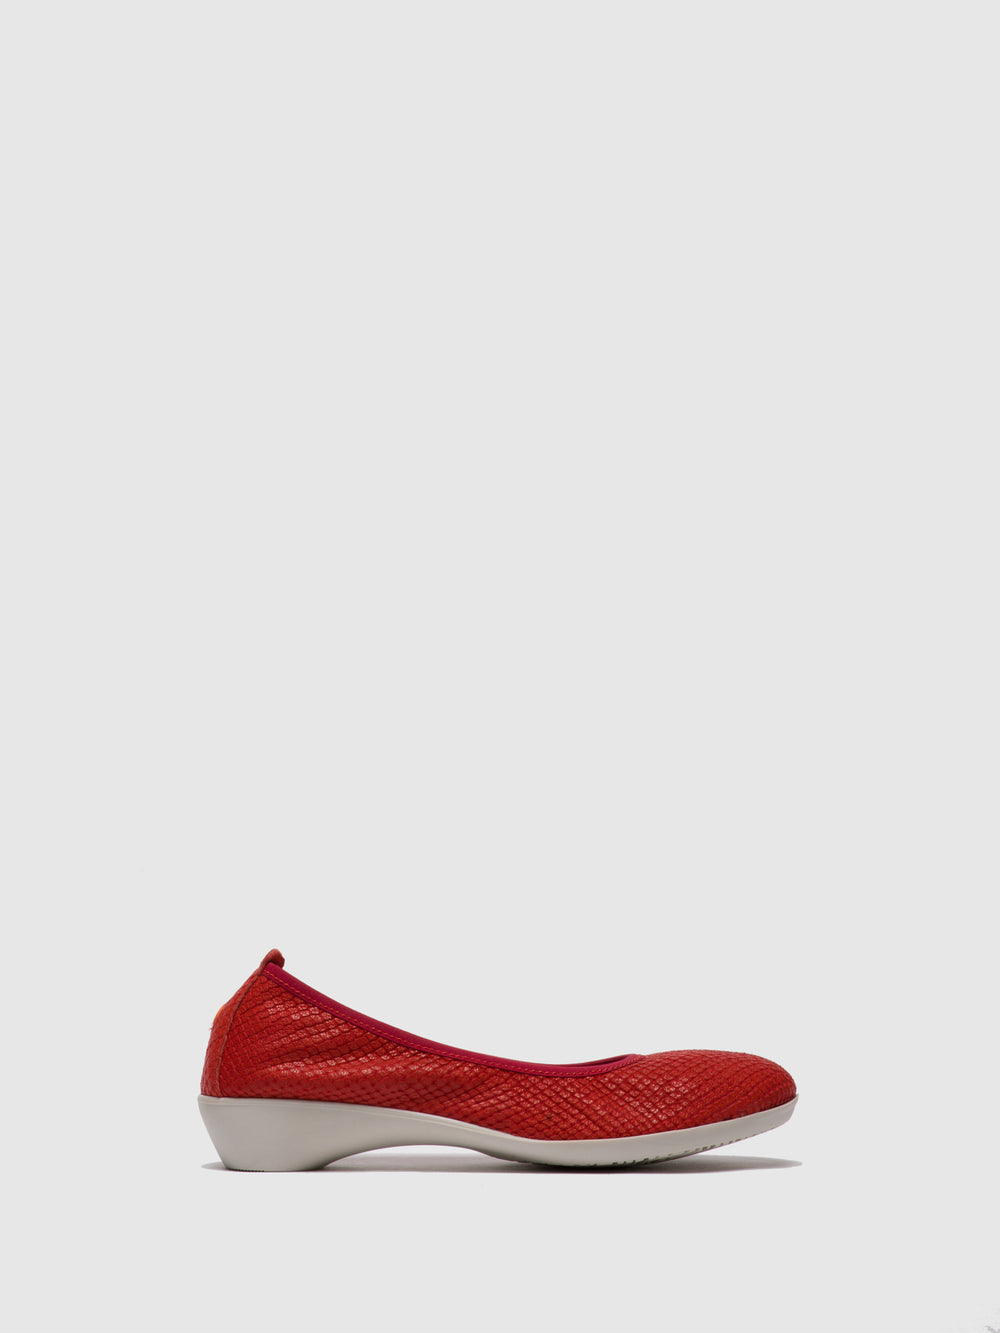 Round Toe Ballerinas GLOR566SOF Devil Red